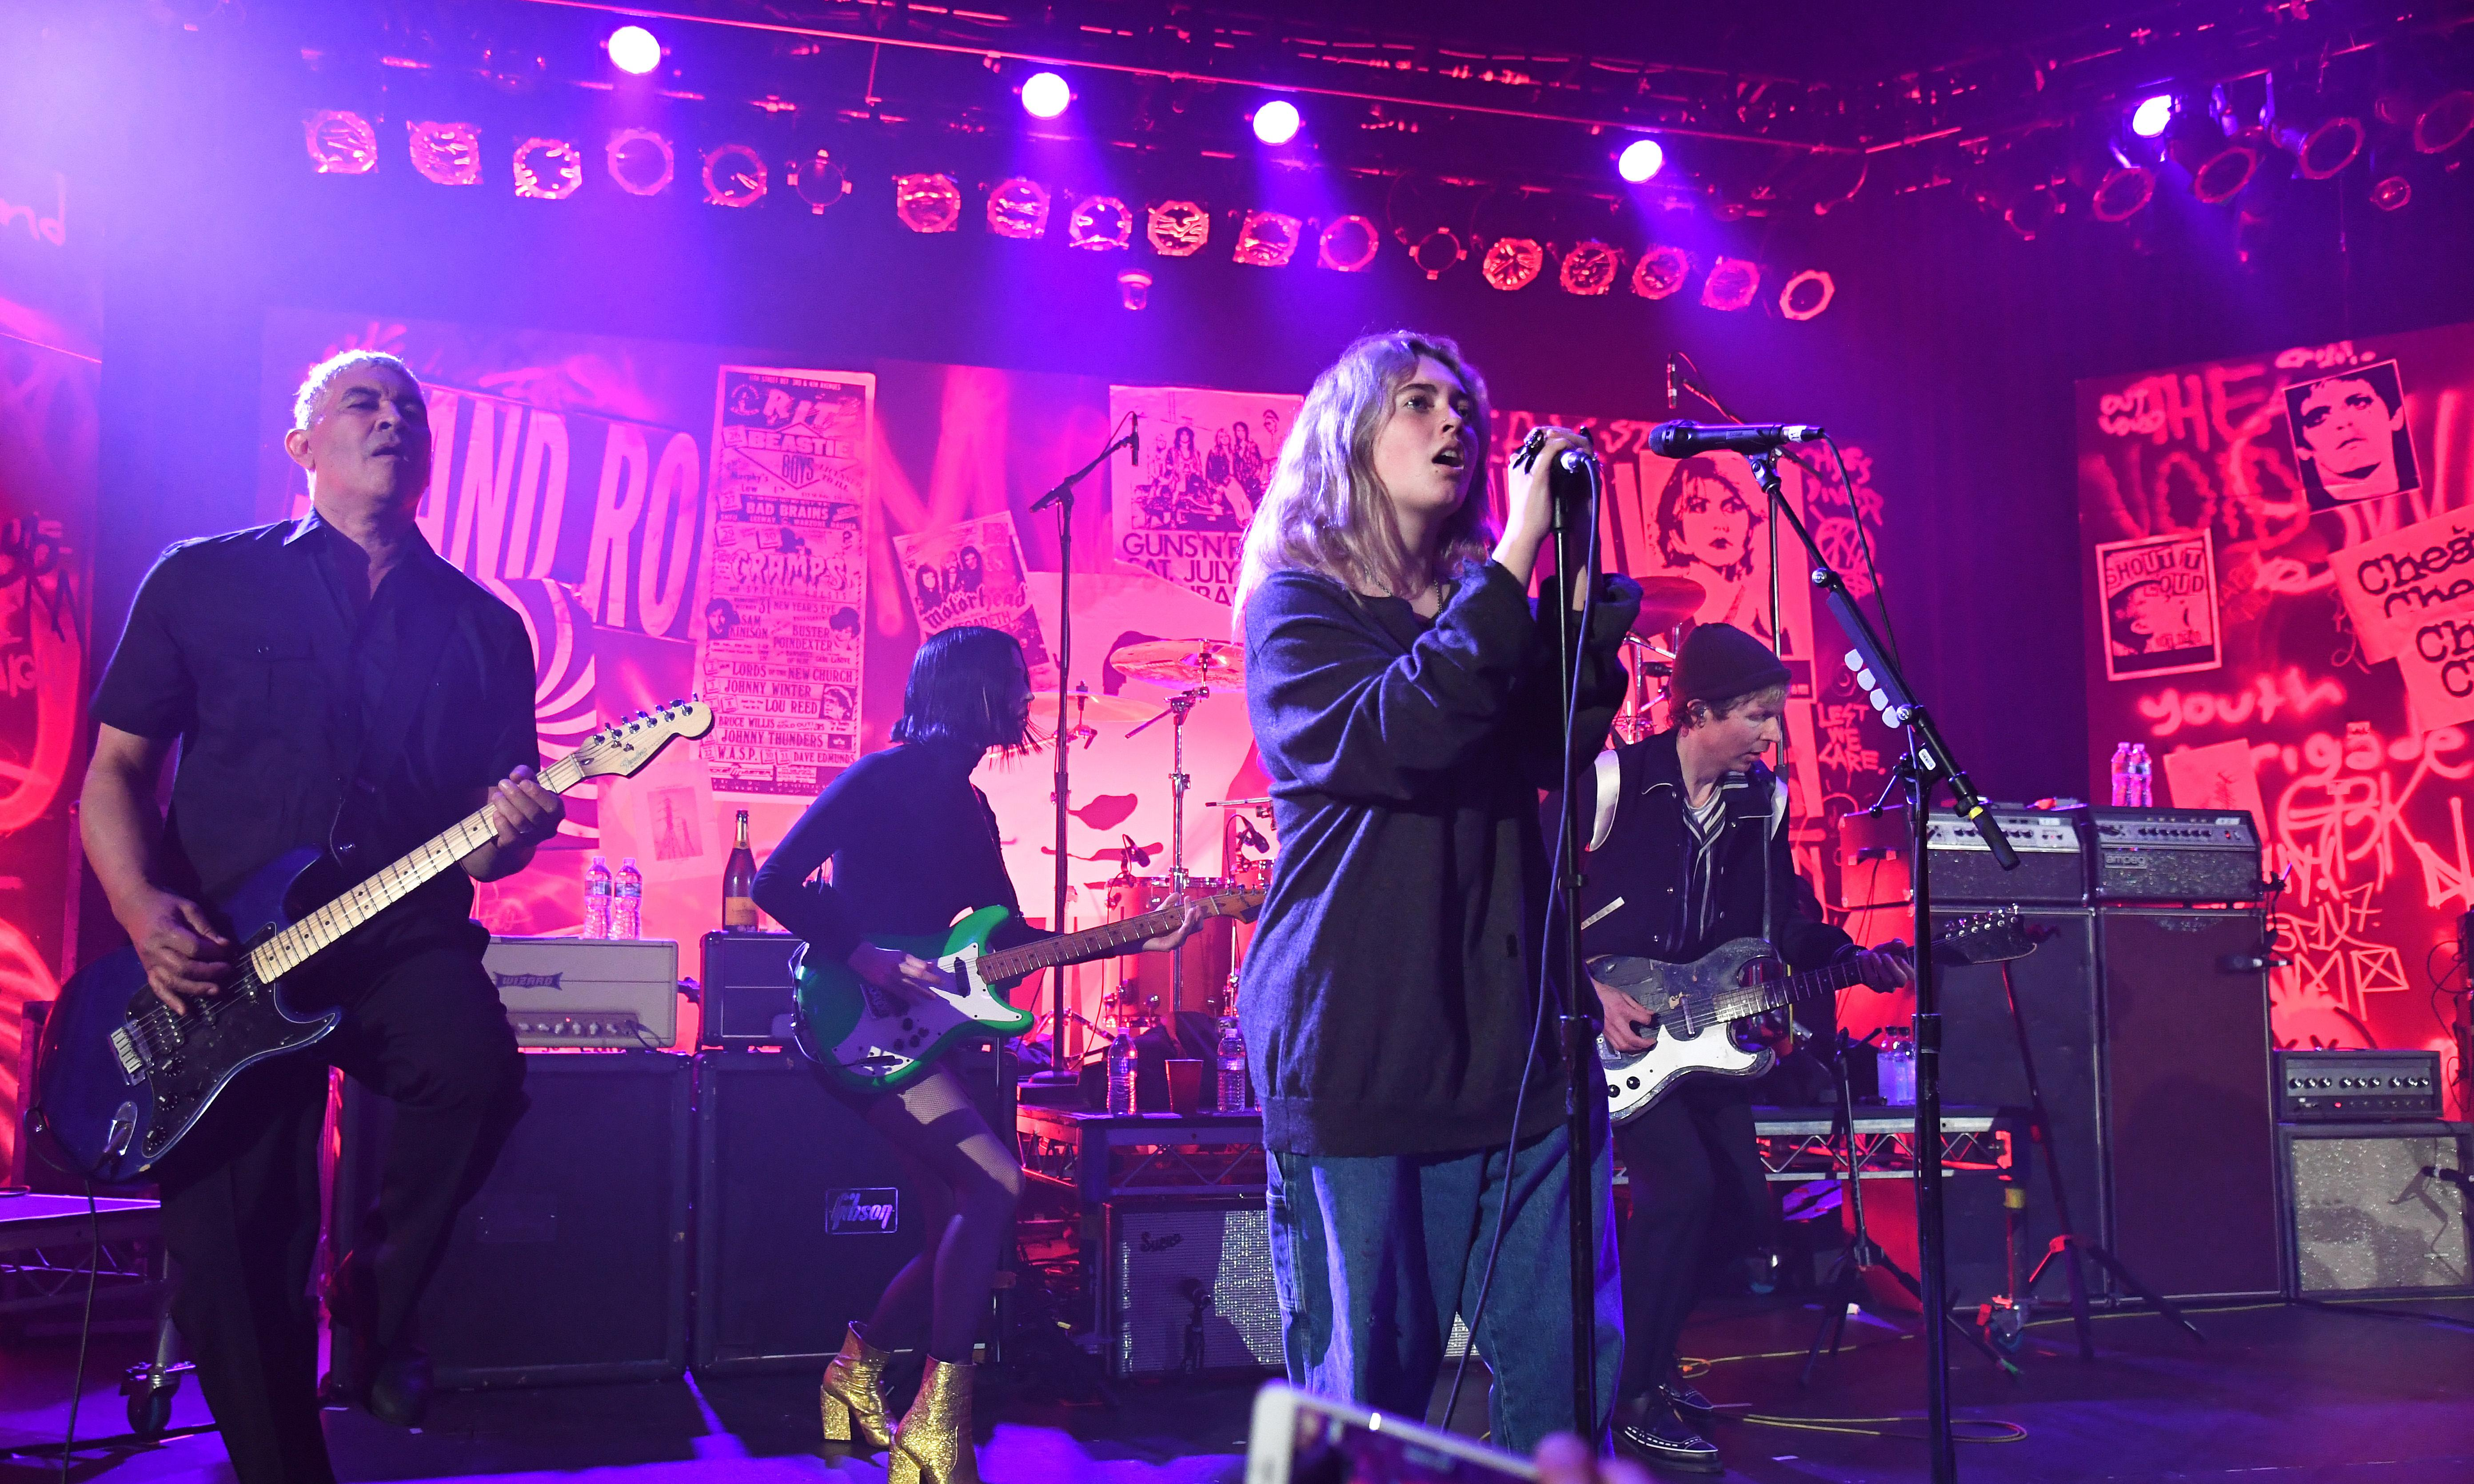 Nirvana reunion: Dave Grohl's 13-year-old daughter steals the show